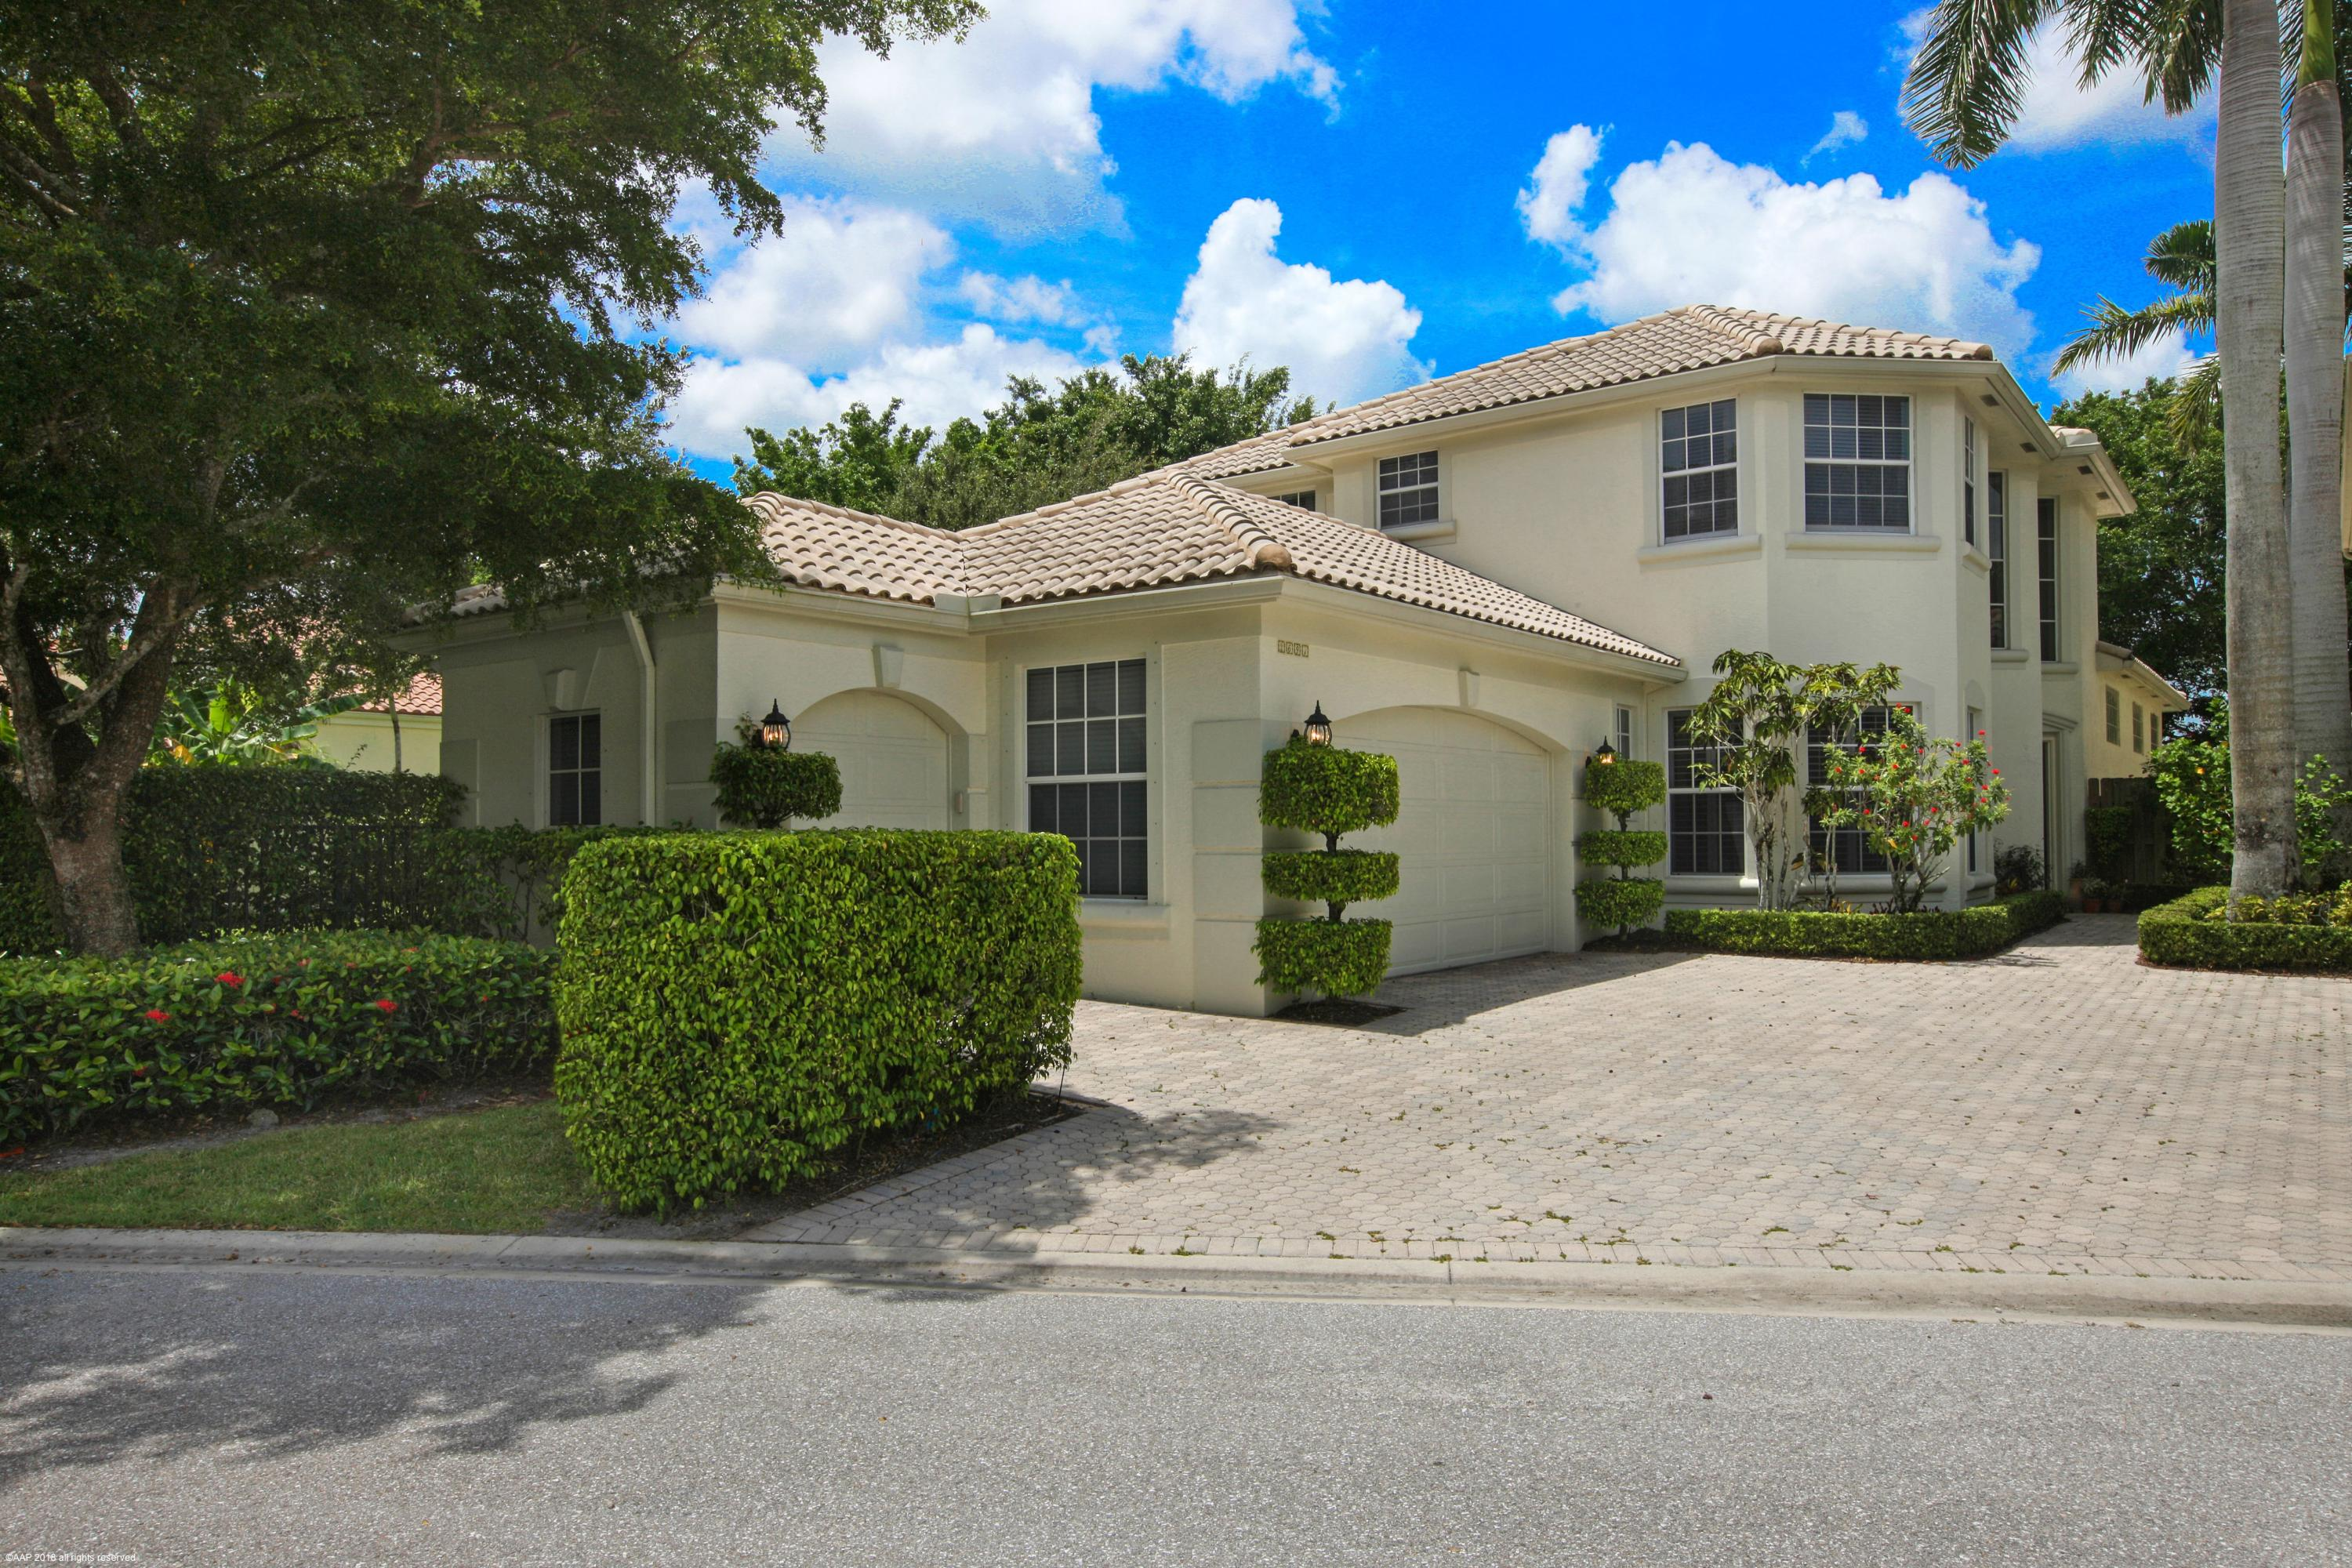 2691/2697 Players Court, Wellington, Florida 33414, 5 Bedrooms Bedrooms, ,4.2 BathroomsBathrooms,Single Family,For Sale,Palm Beach Polo & CC,Players,RX-10455993